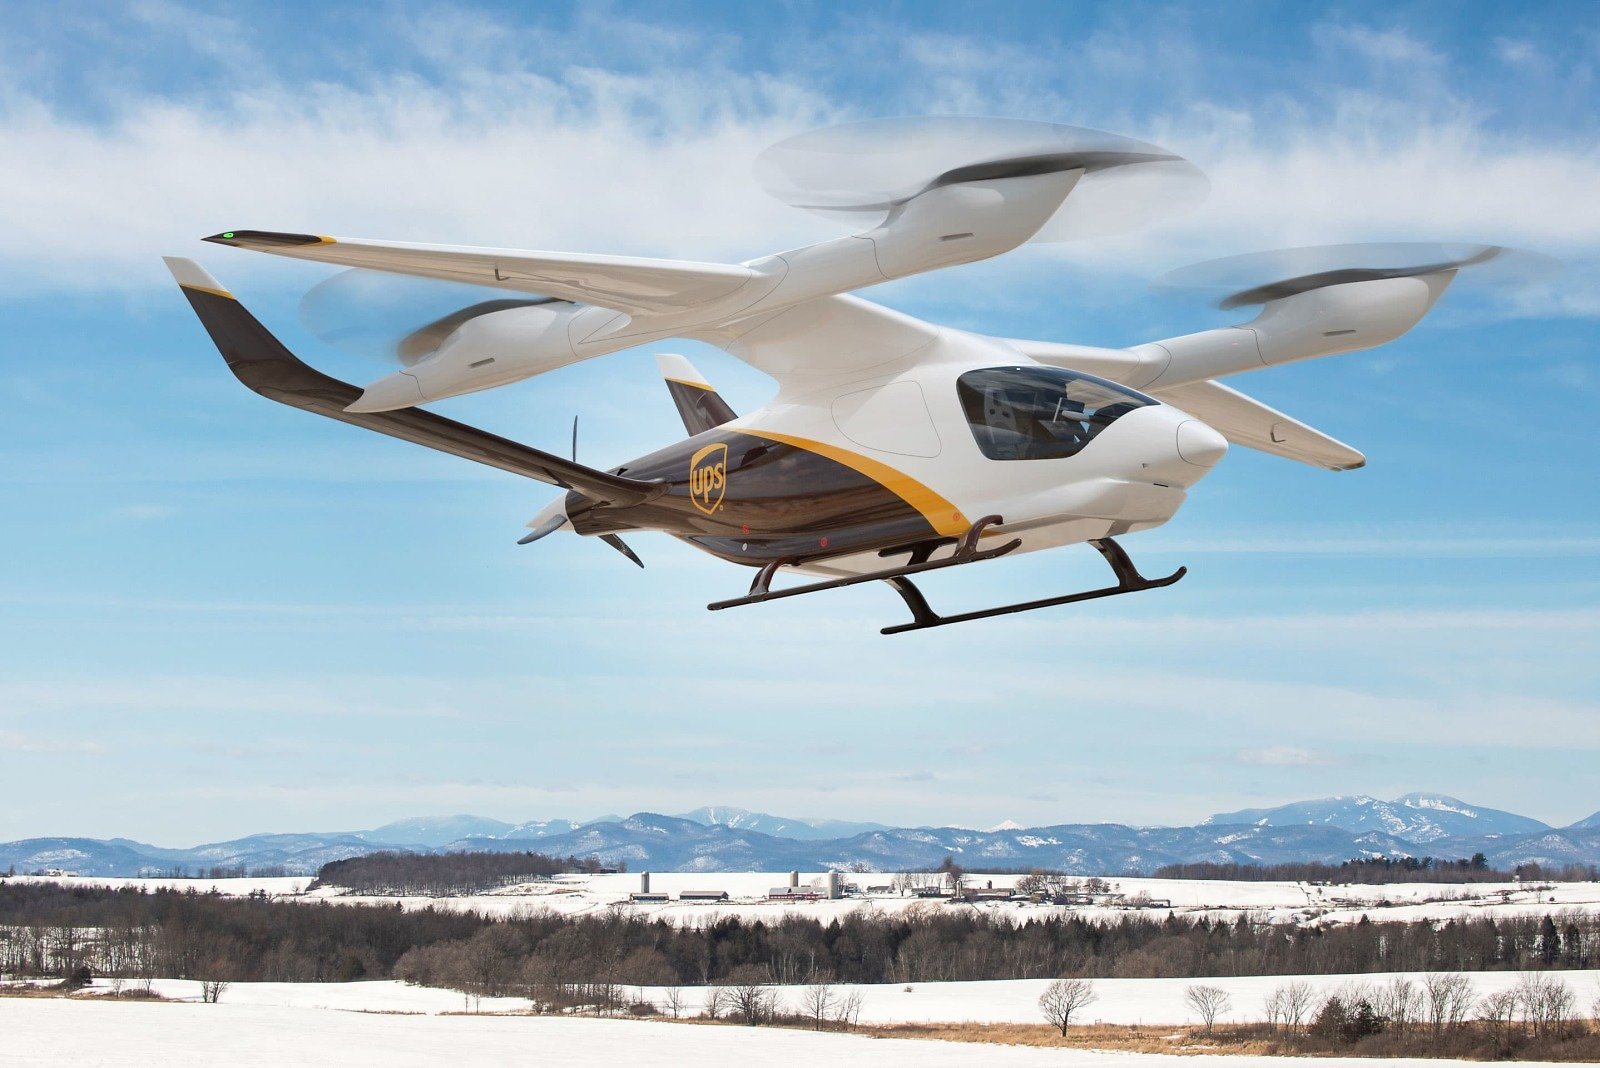 UPS Agrees to Buy Electric Vertical Aircraft to Speed Up Package Delivery in Small Markets